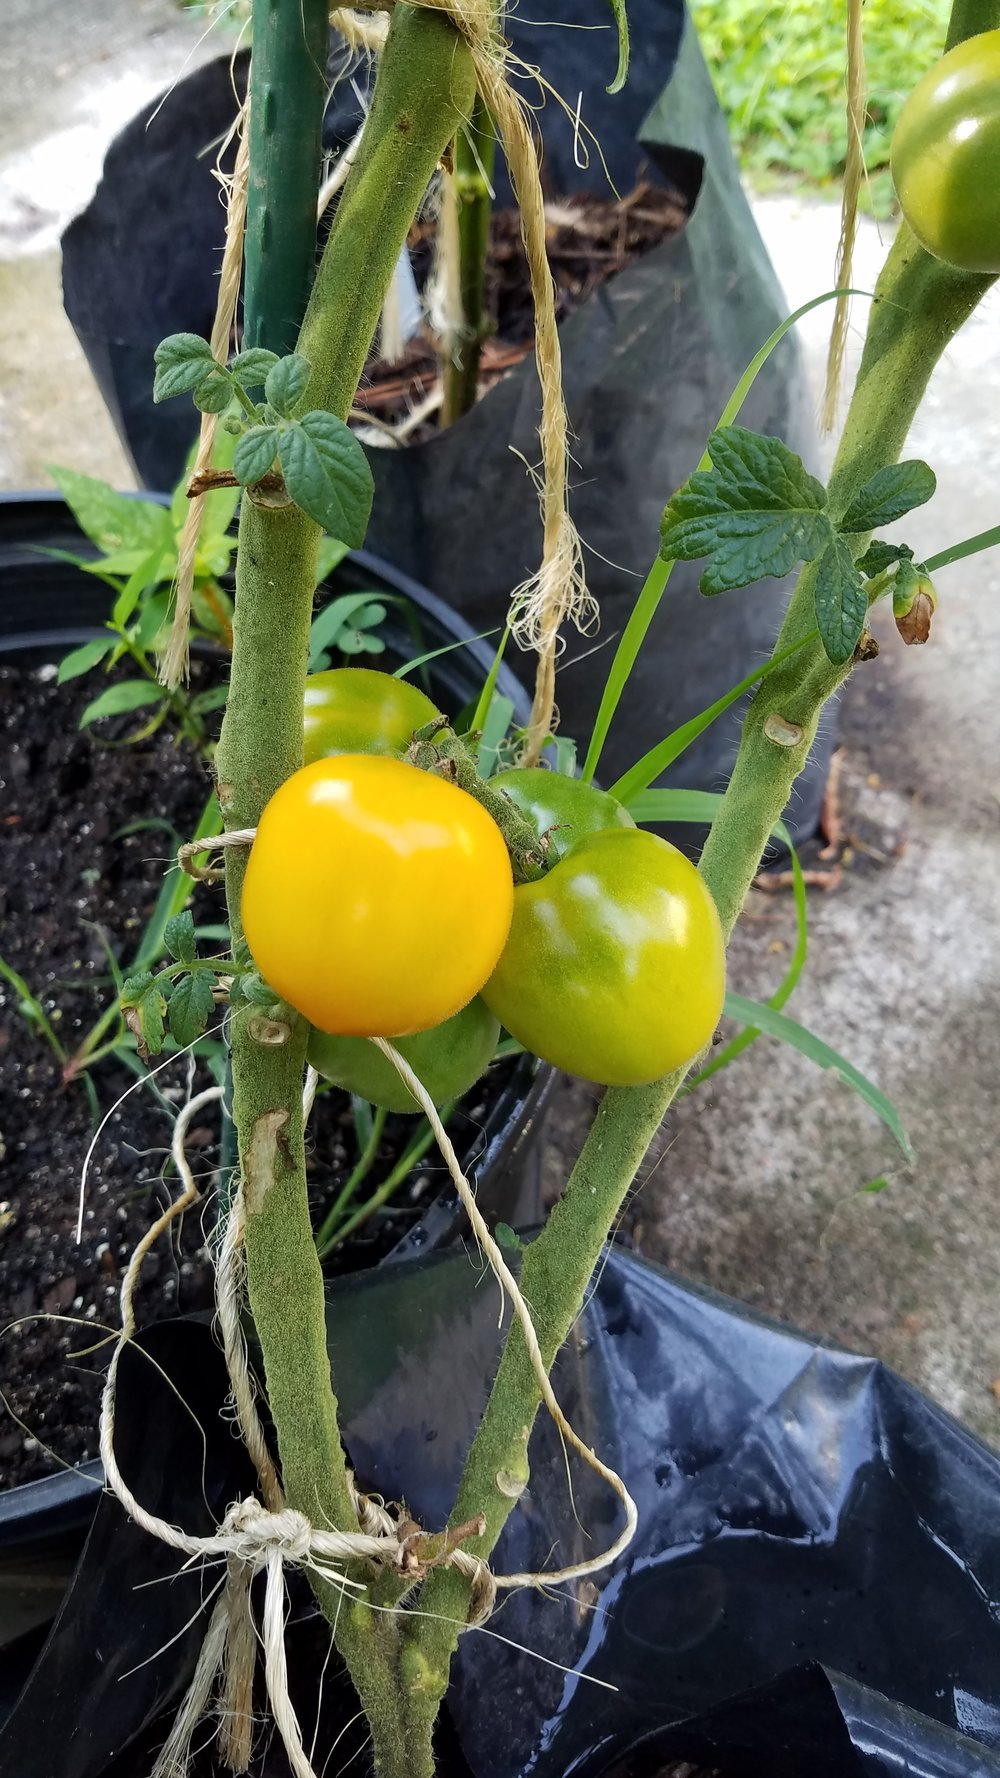 Reddy 5784 - nice large yellow cherry tomato